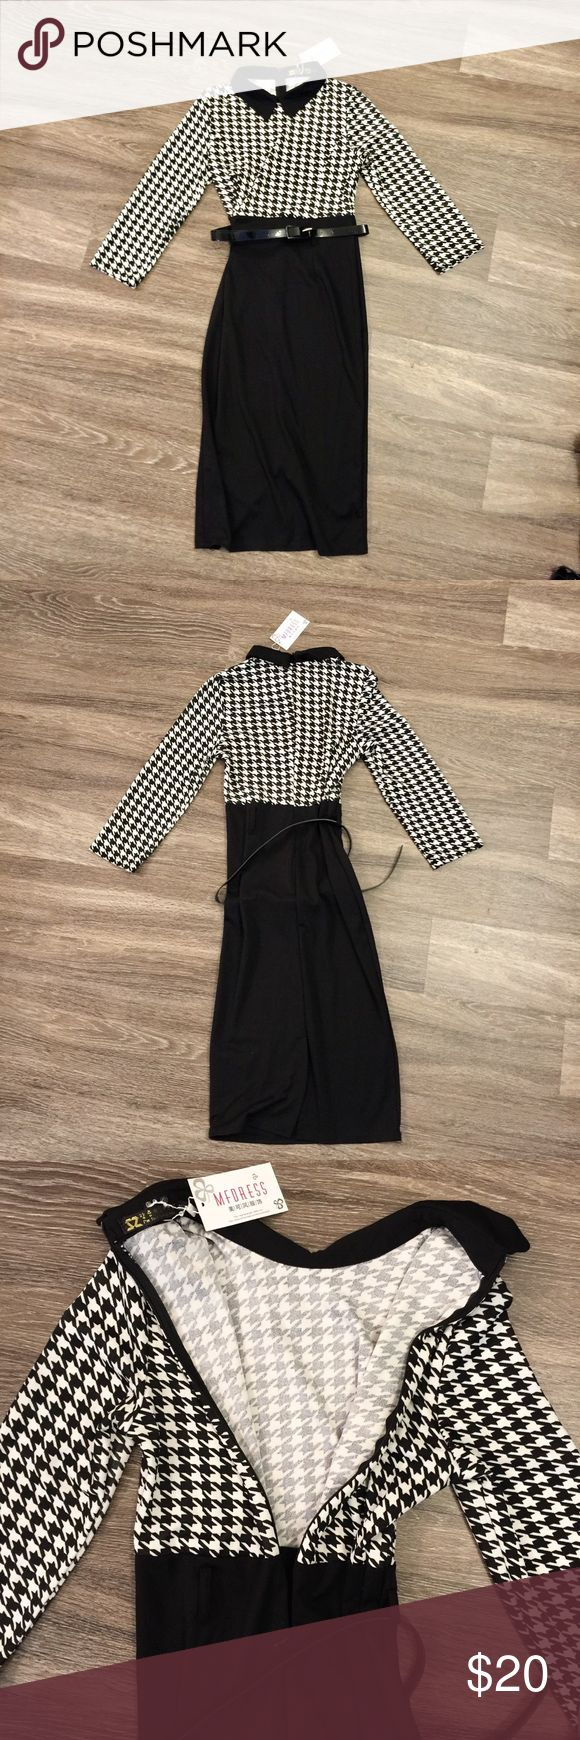 Black white houndstooth fitted long dress Marked size medium but fits more like a small. Fitted long black and white print dress. Comes with small detachable belt around waist. Zips up in back. Brand new with tags. Stretchy material. Dresses